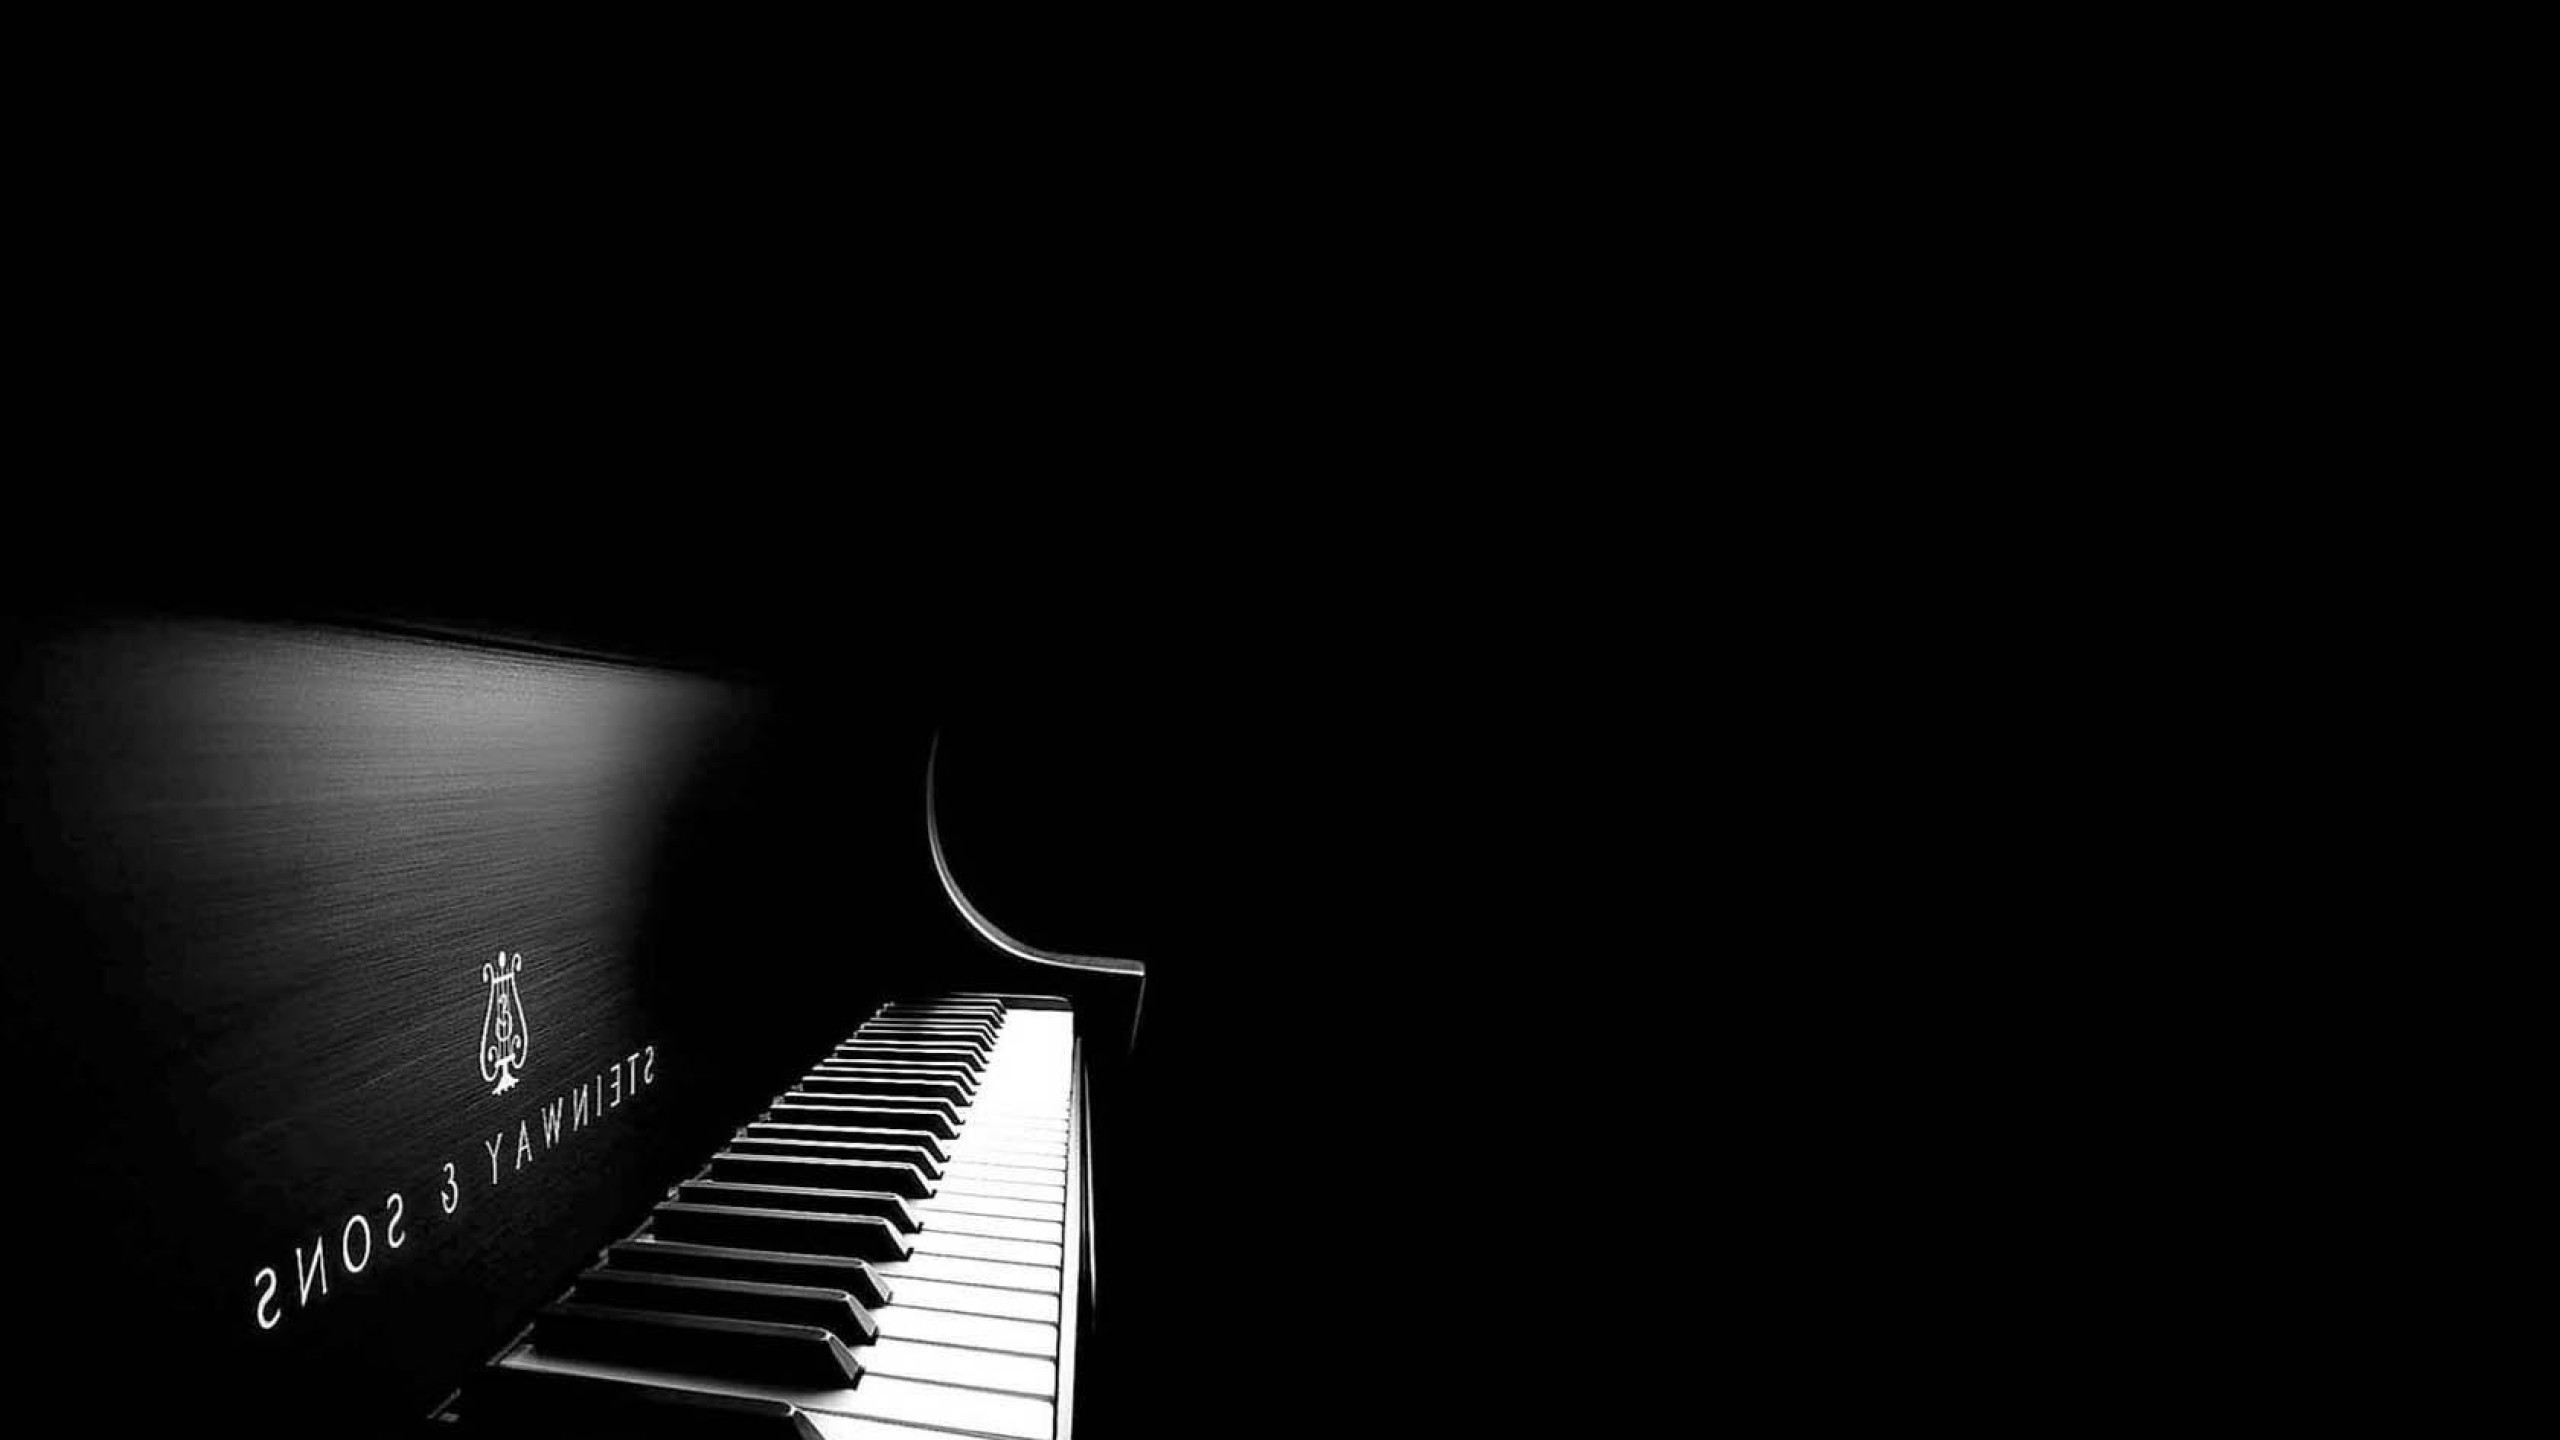 Piano Wallpapers High Quality